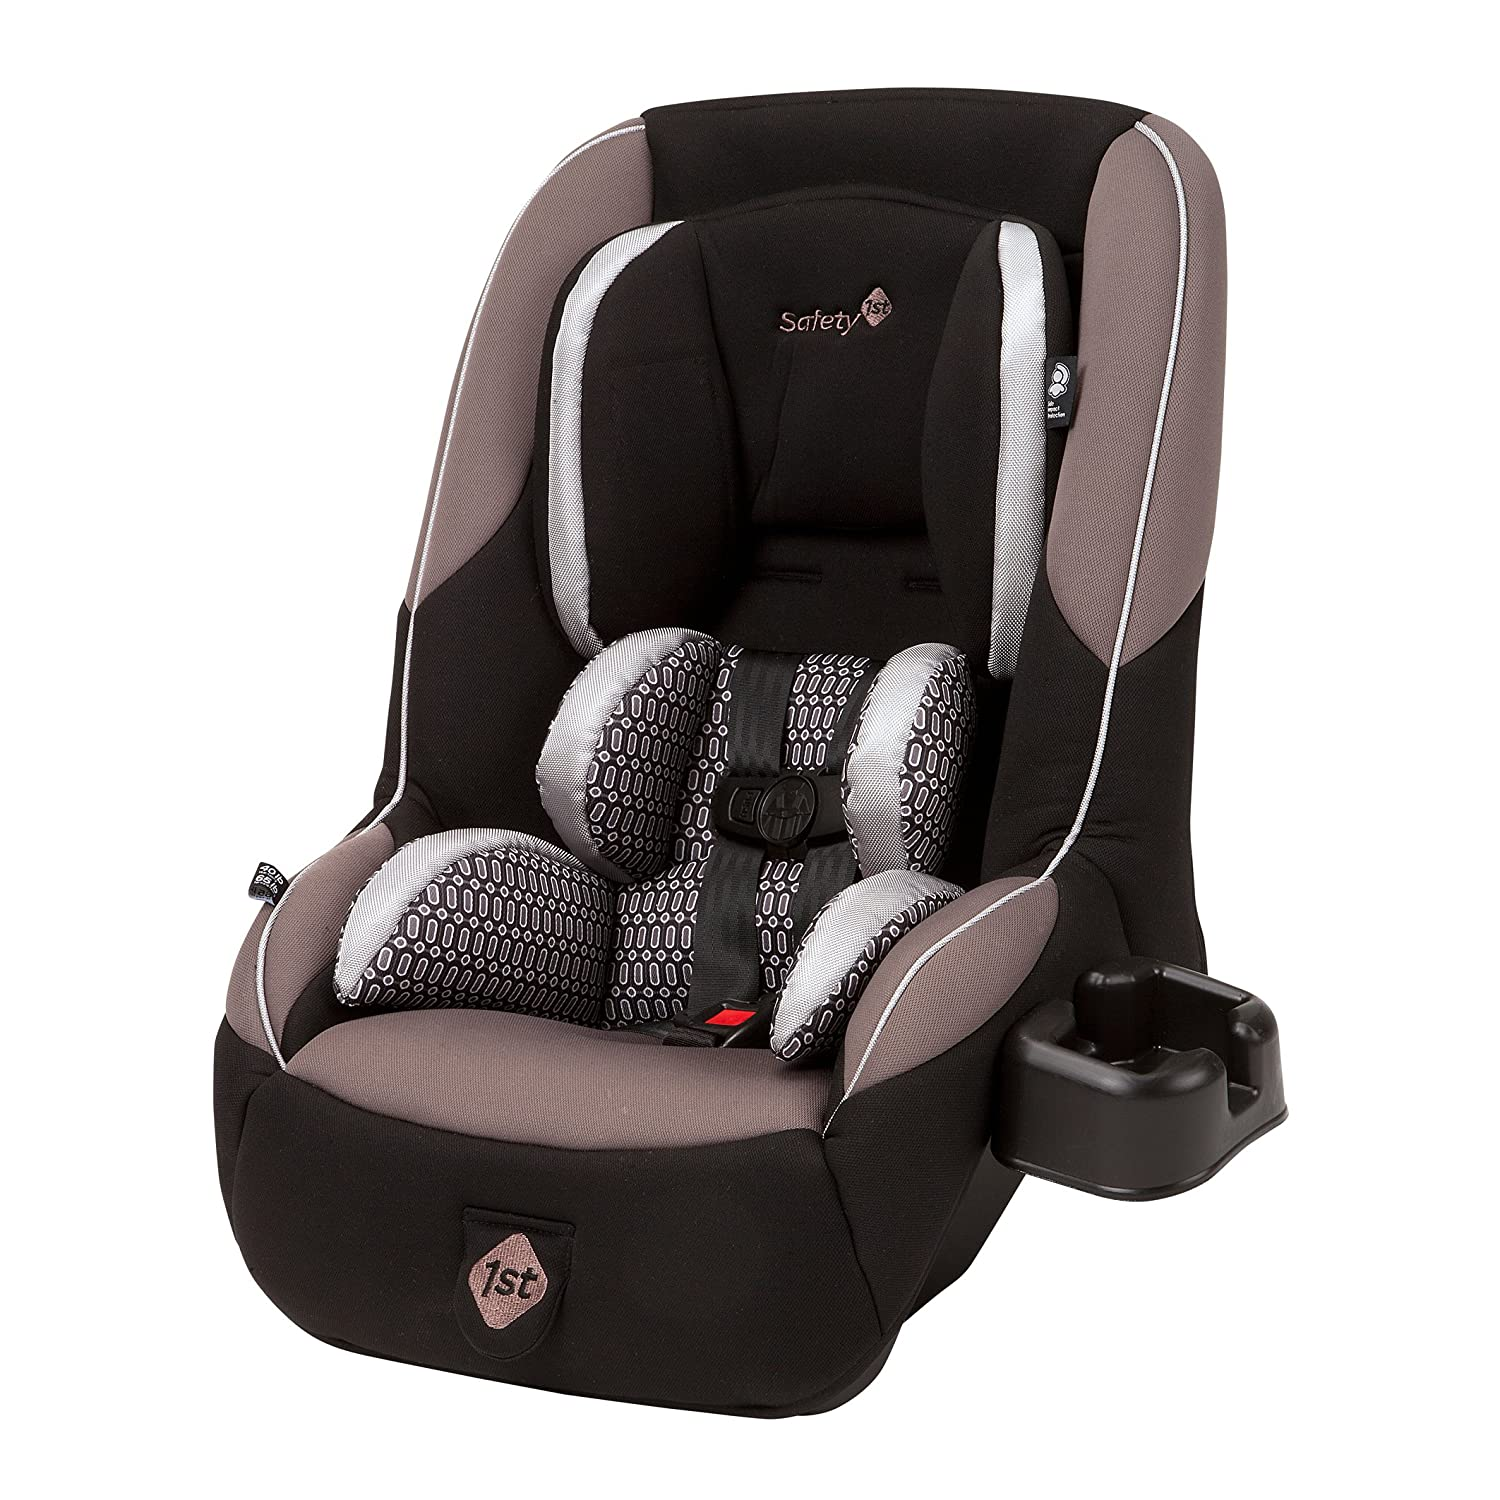 Top 7 Best Affordable Convertible Car Seats (2020 Reviews) 1